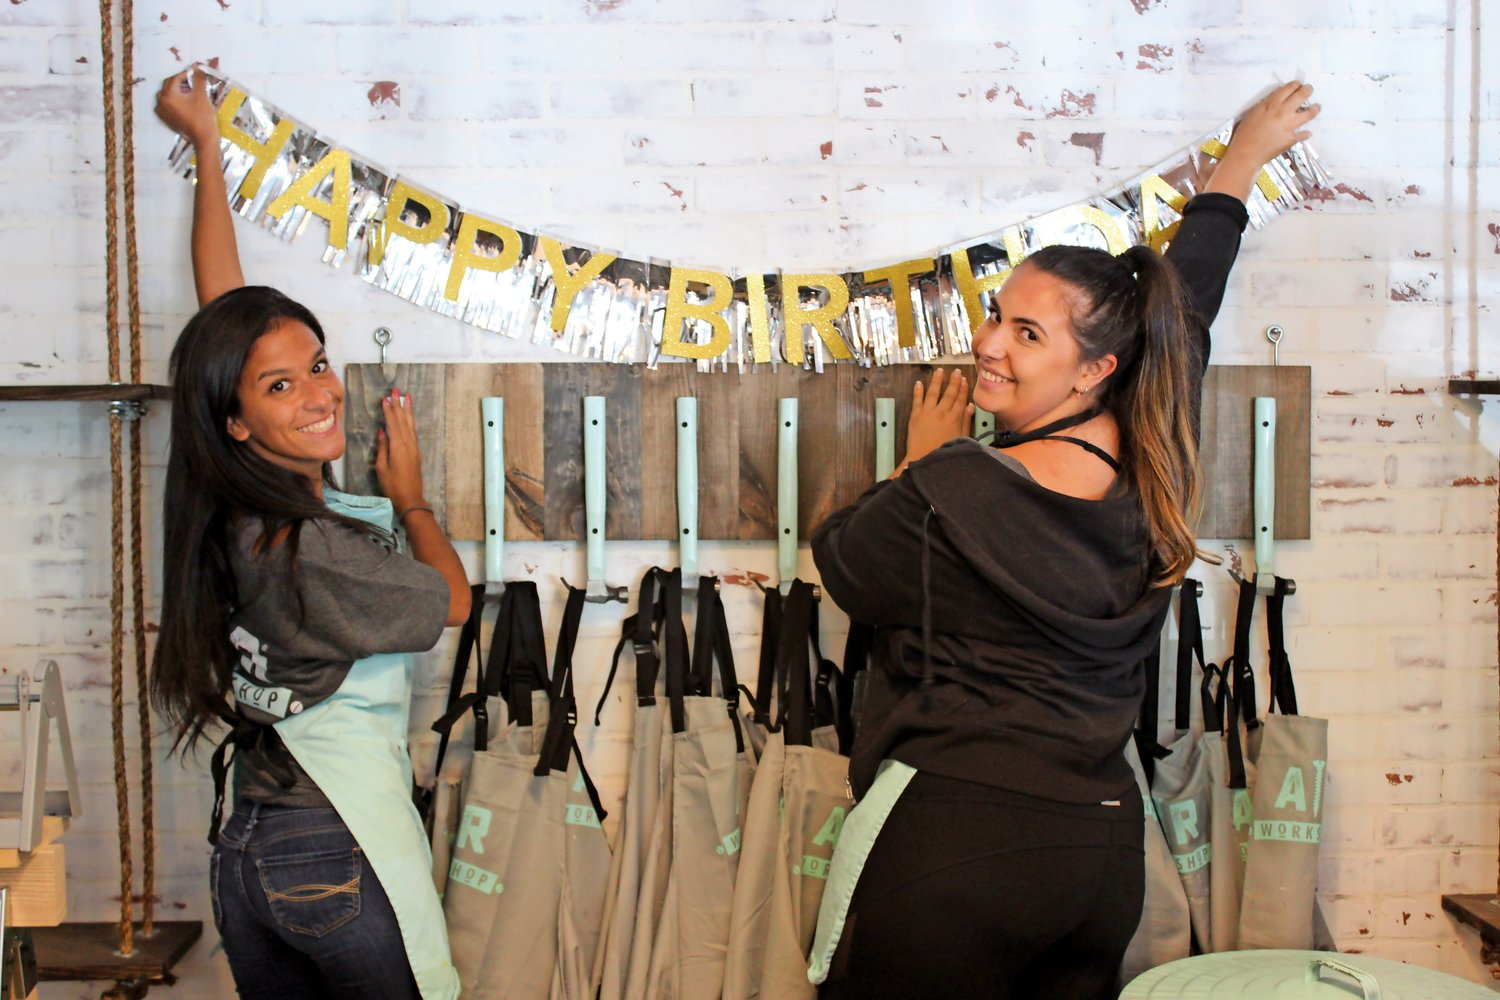 Project assistants Nicolette Diraimondo, left, and Sierra Glicker dressed up the shop in birthday décor.